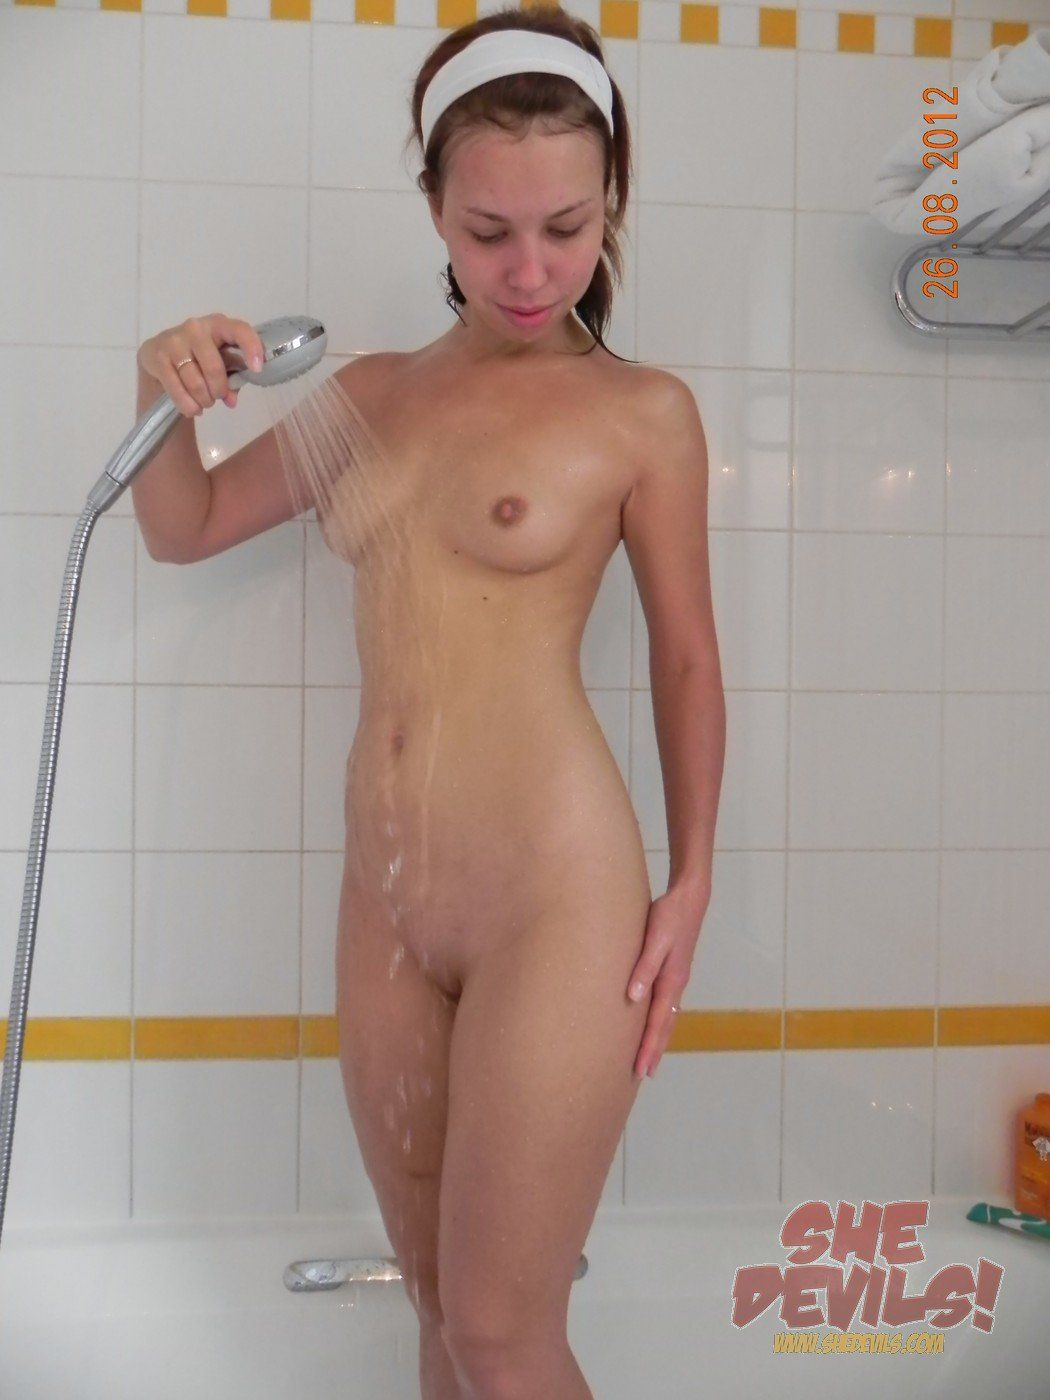 Getting shower girls nude in